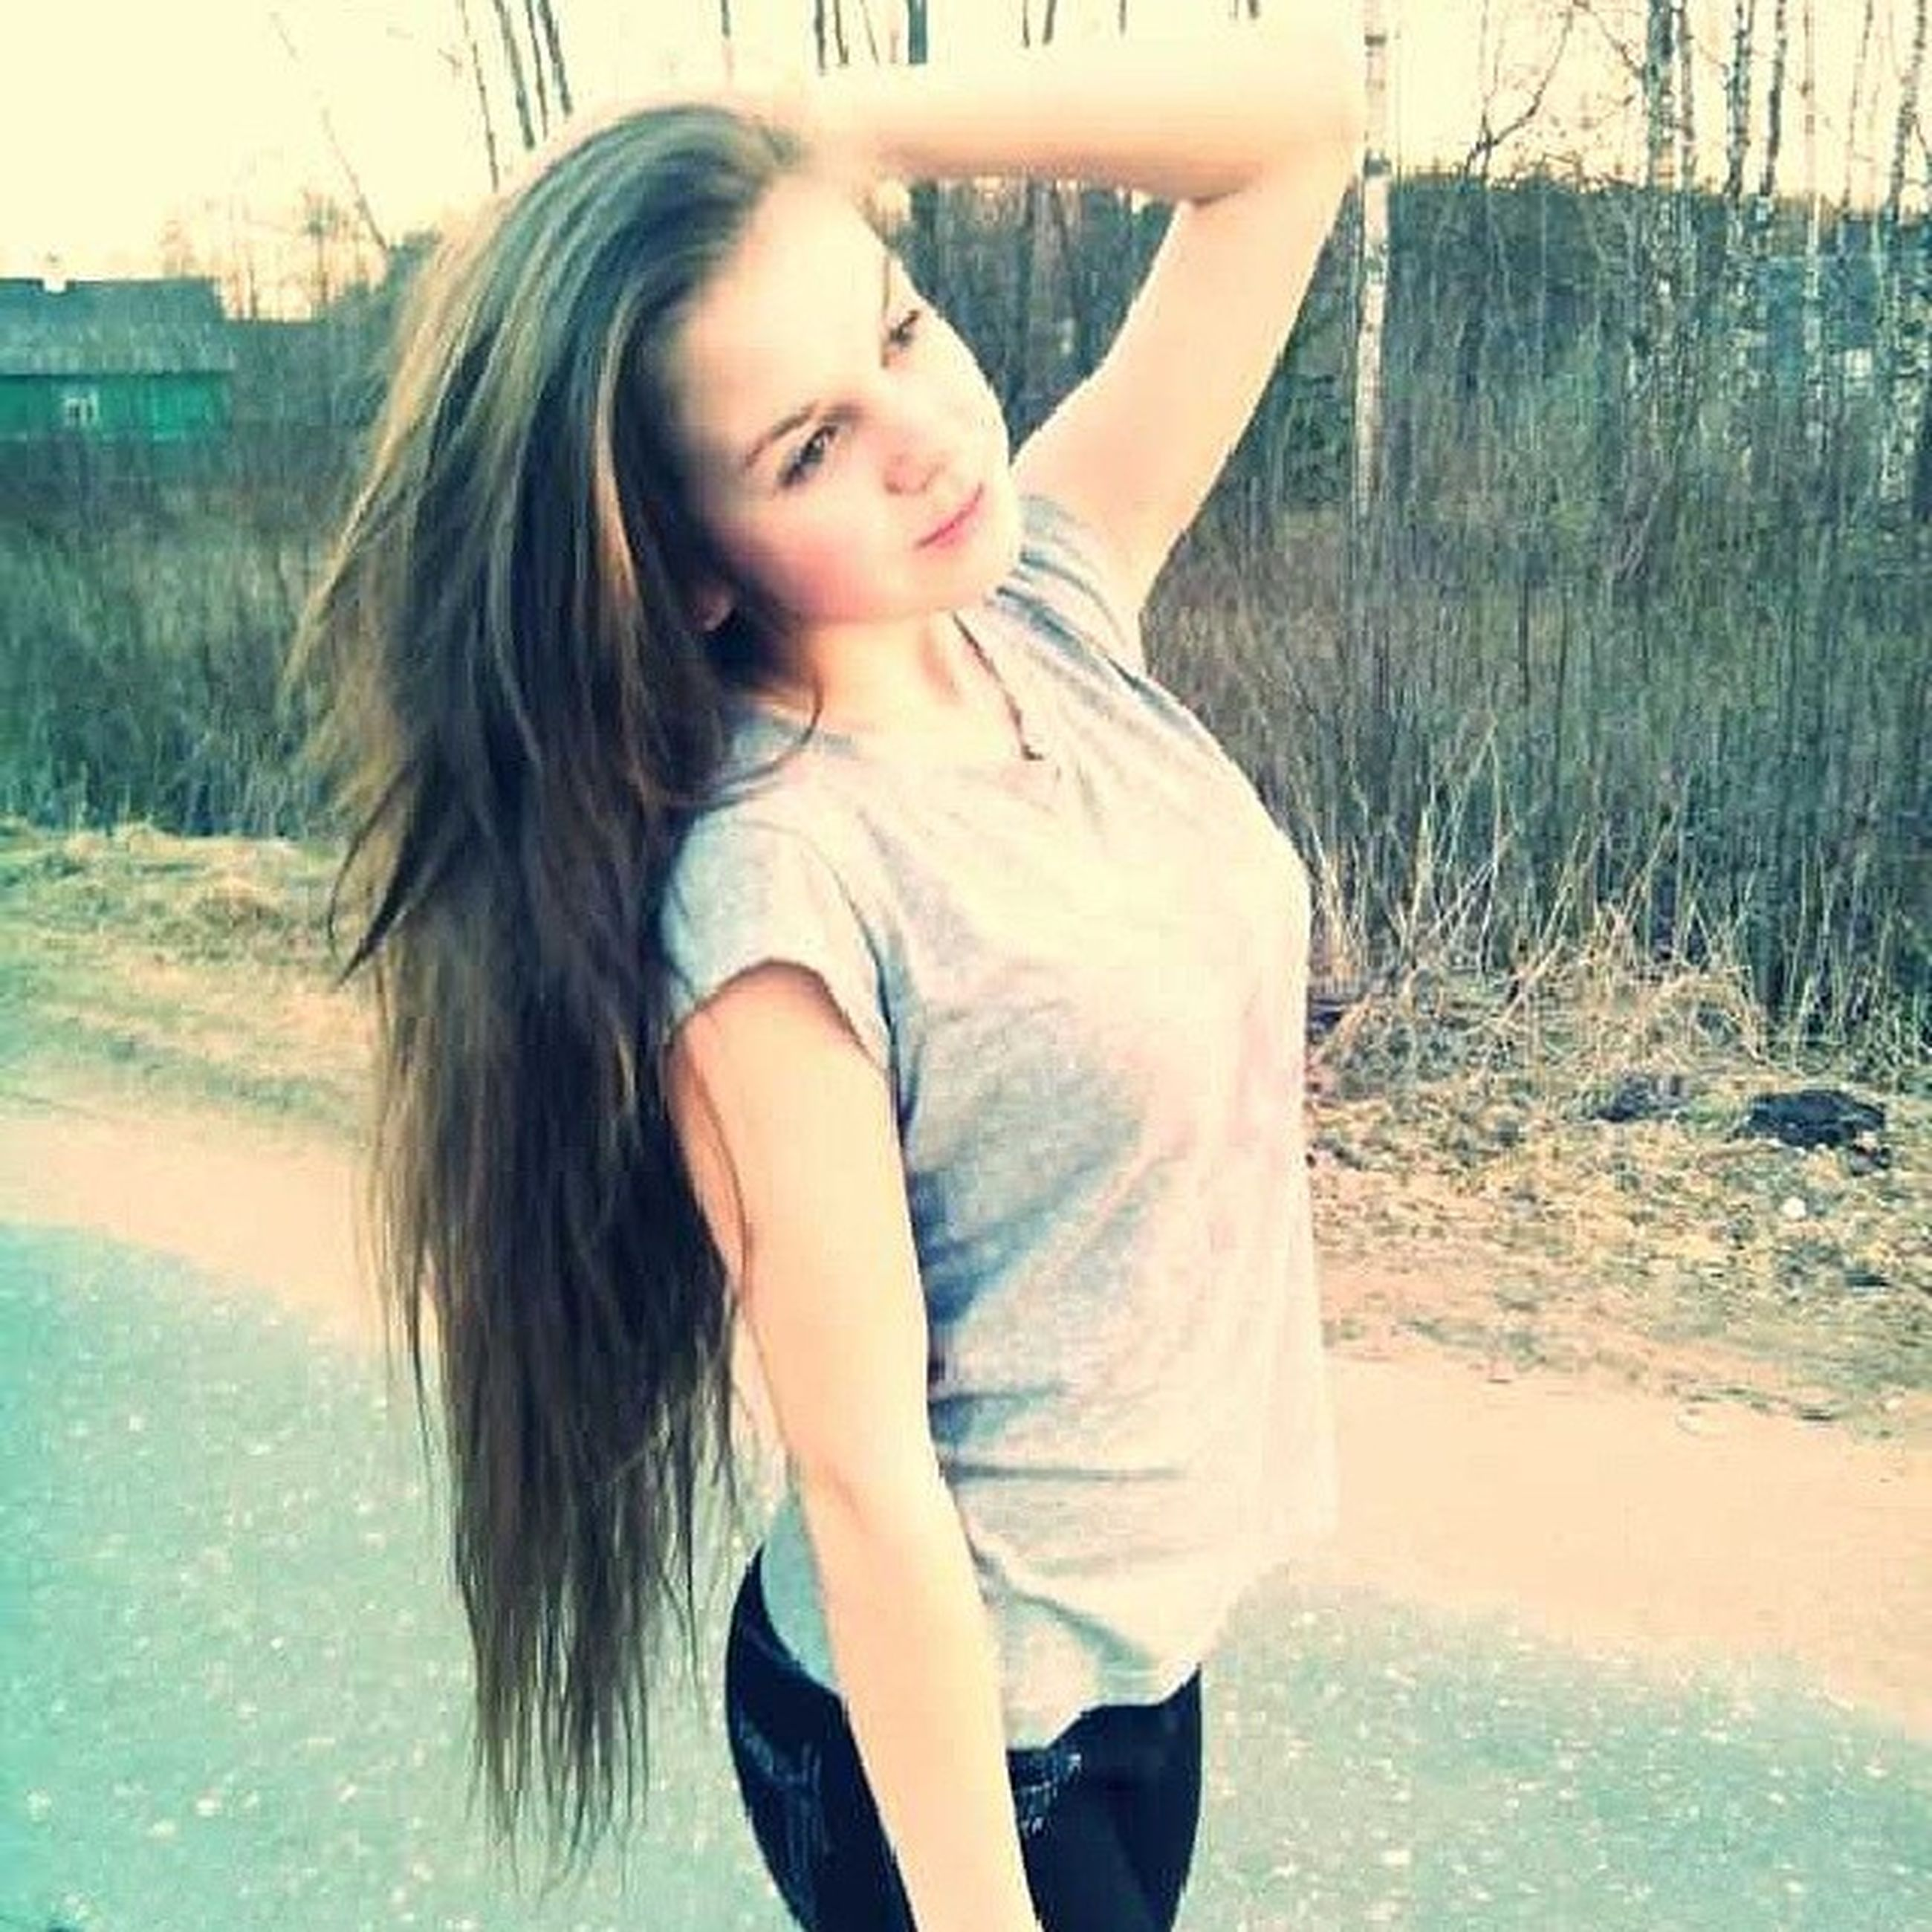 person, young adult, young women, long hair, lifestyles, leisure activity, water, portrait, looking at camera, smiling, casual clothing, blond hair, front view, happiness, three quarter length, standing, medium-length hair